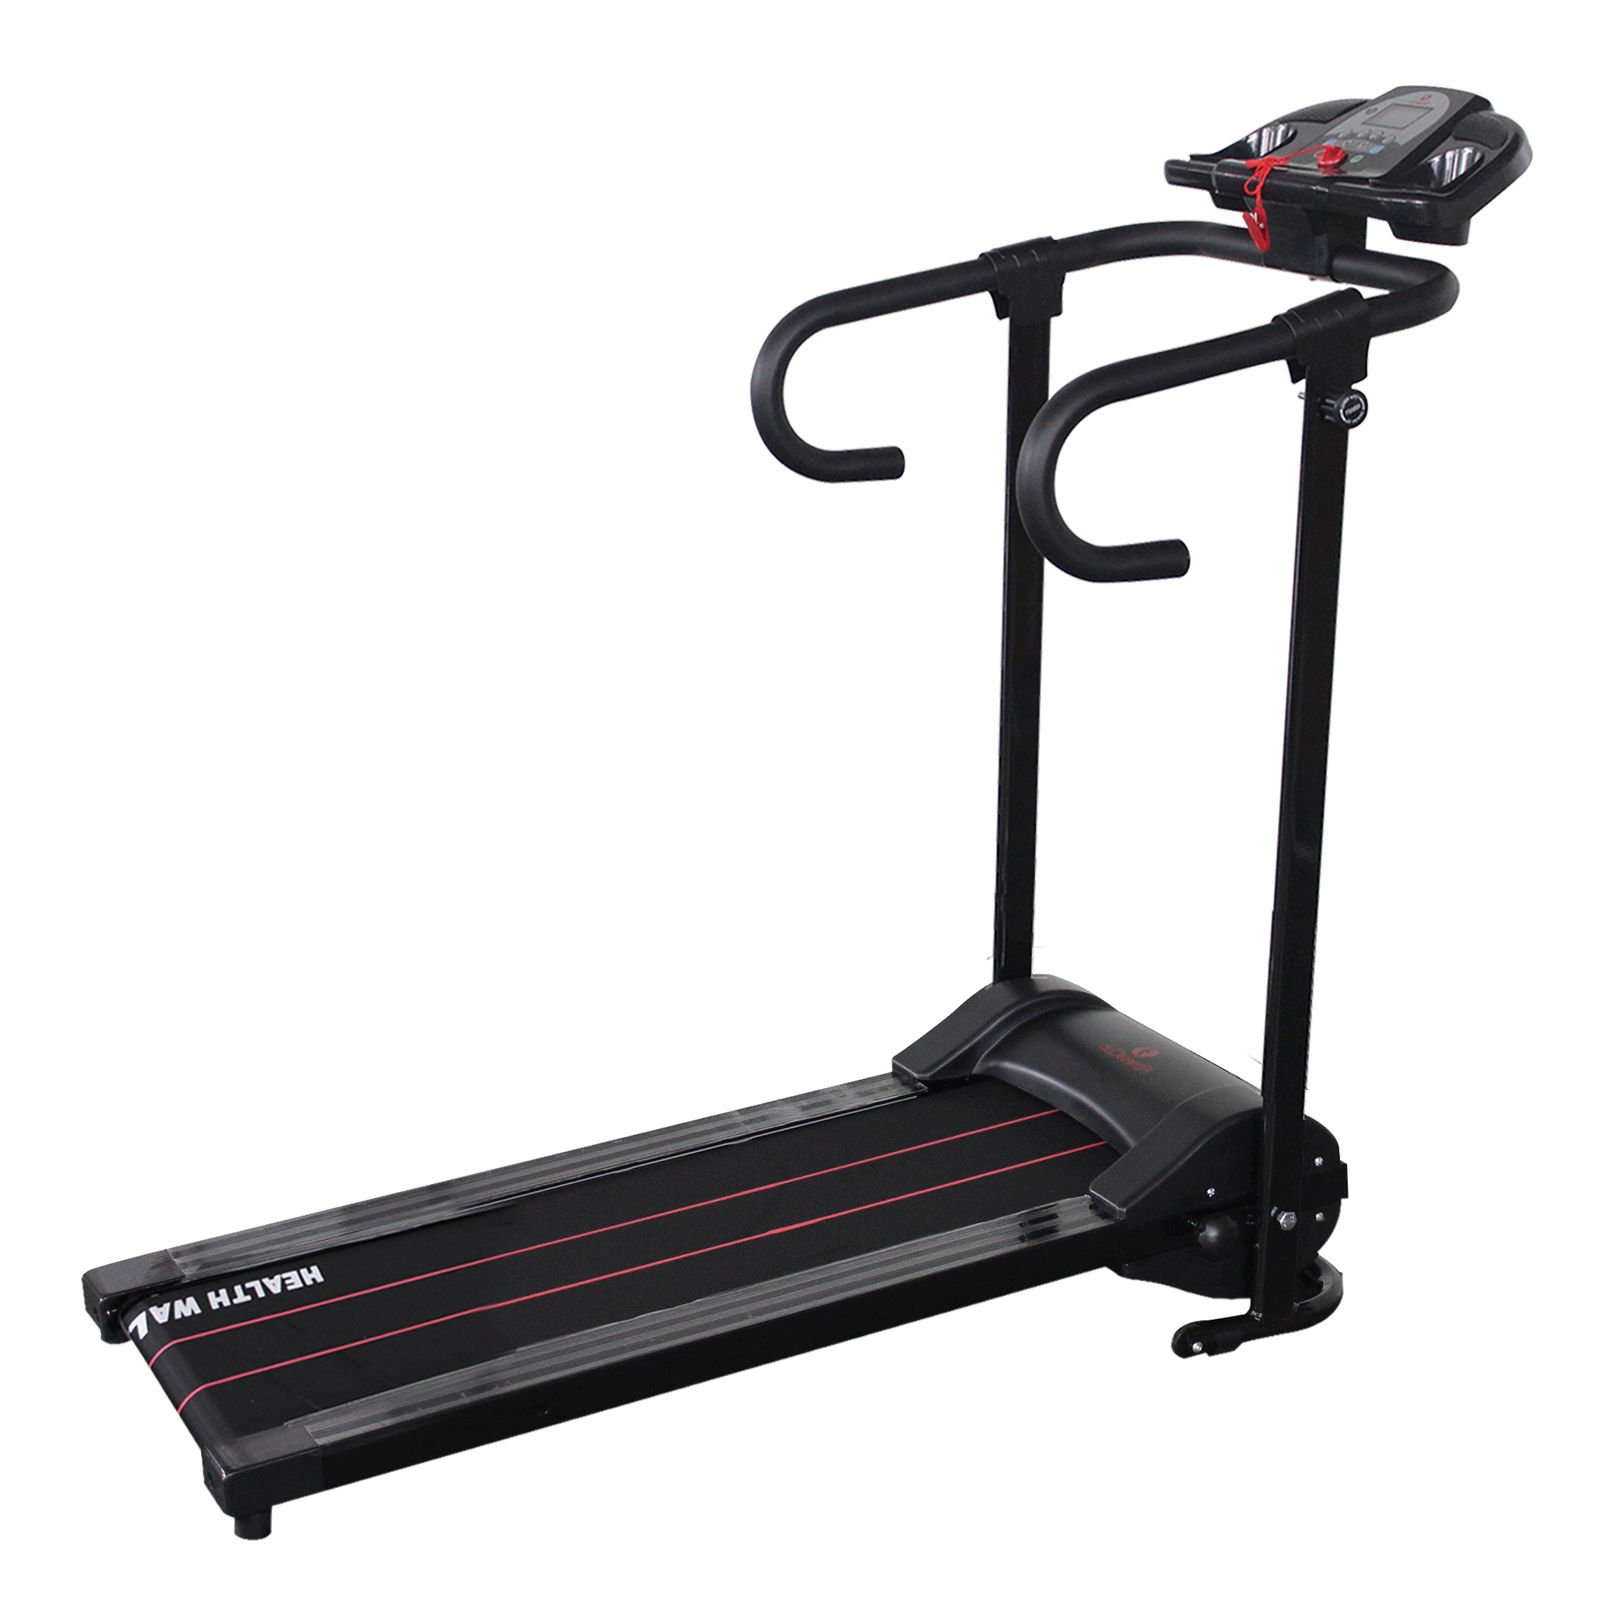 Portable 500W Folding Electric Motorized Treadmill Running Gym Fitness Machine by ZETY (Image #8)